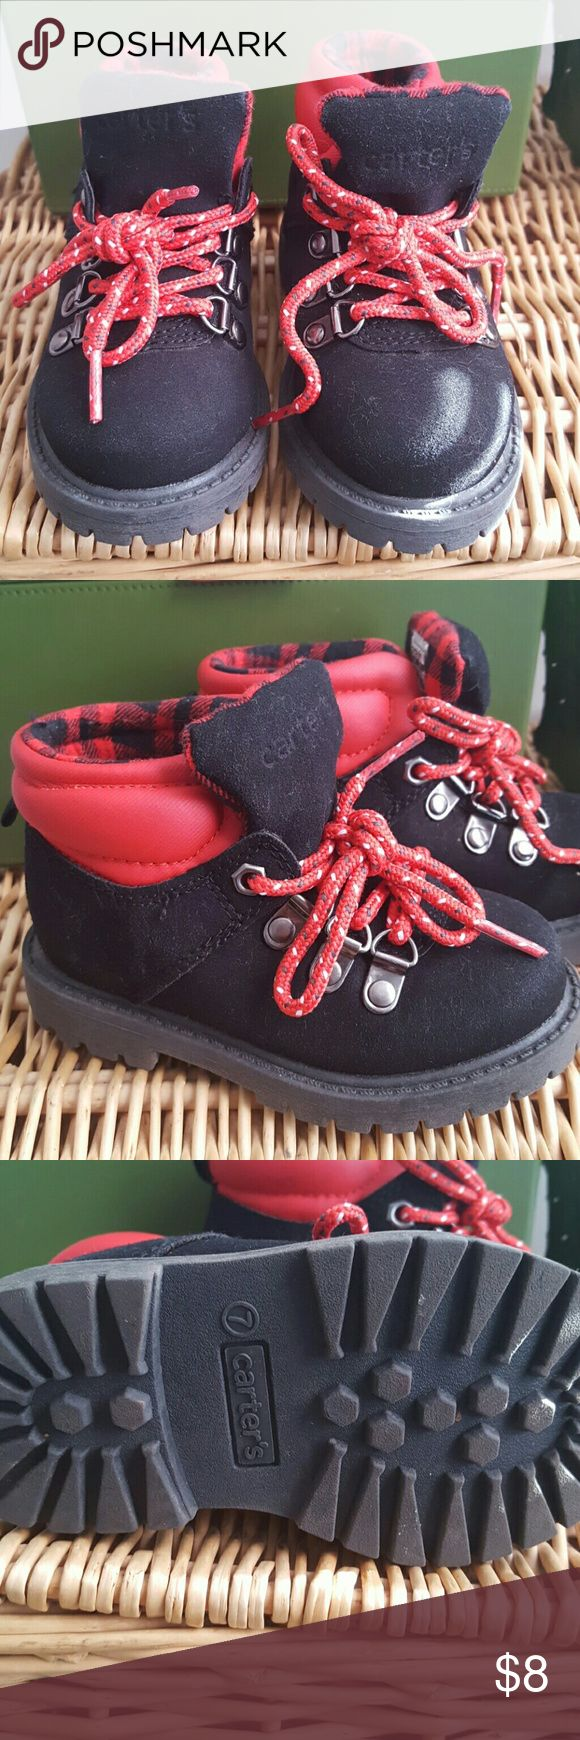 Carter's toddler winter boots Black and red winter boots for toddler size 7. Red leather and black suede. Like new condition. Carter's Shoes Boots